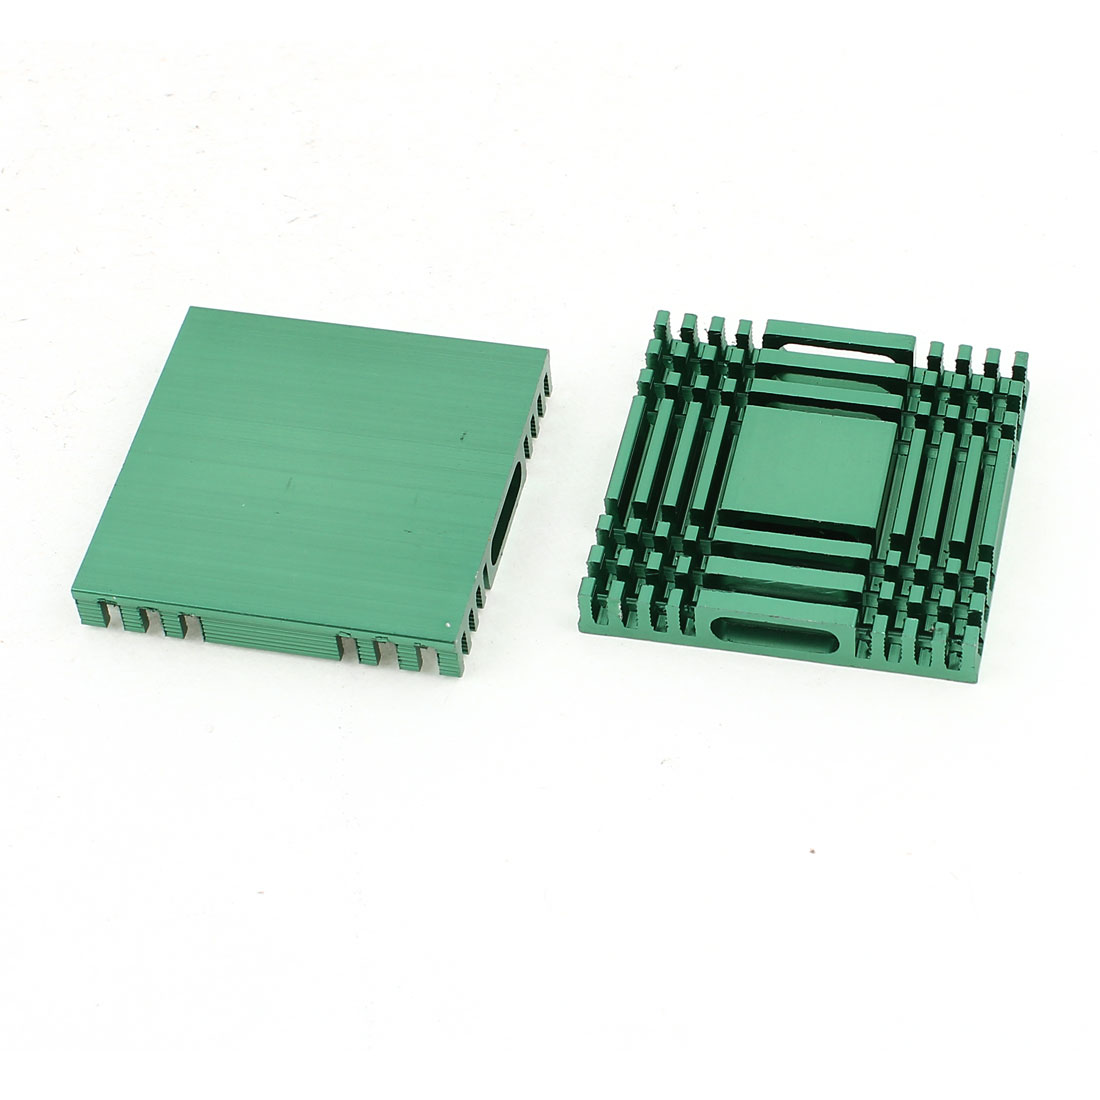 2 Pcs Green Aluminum Heat Sink 37x37x6mm for Computer PC Chipset